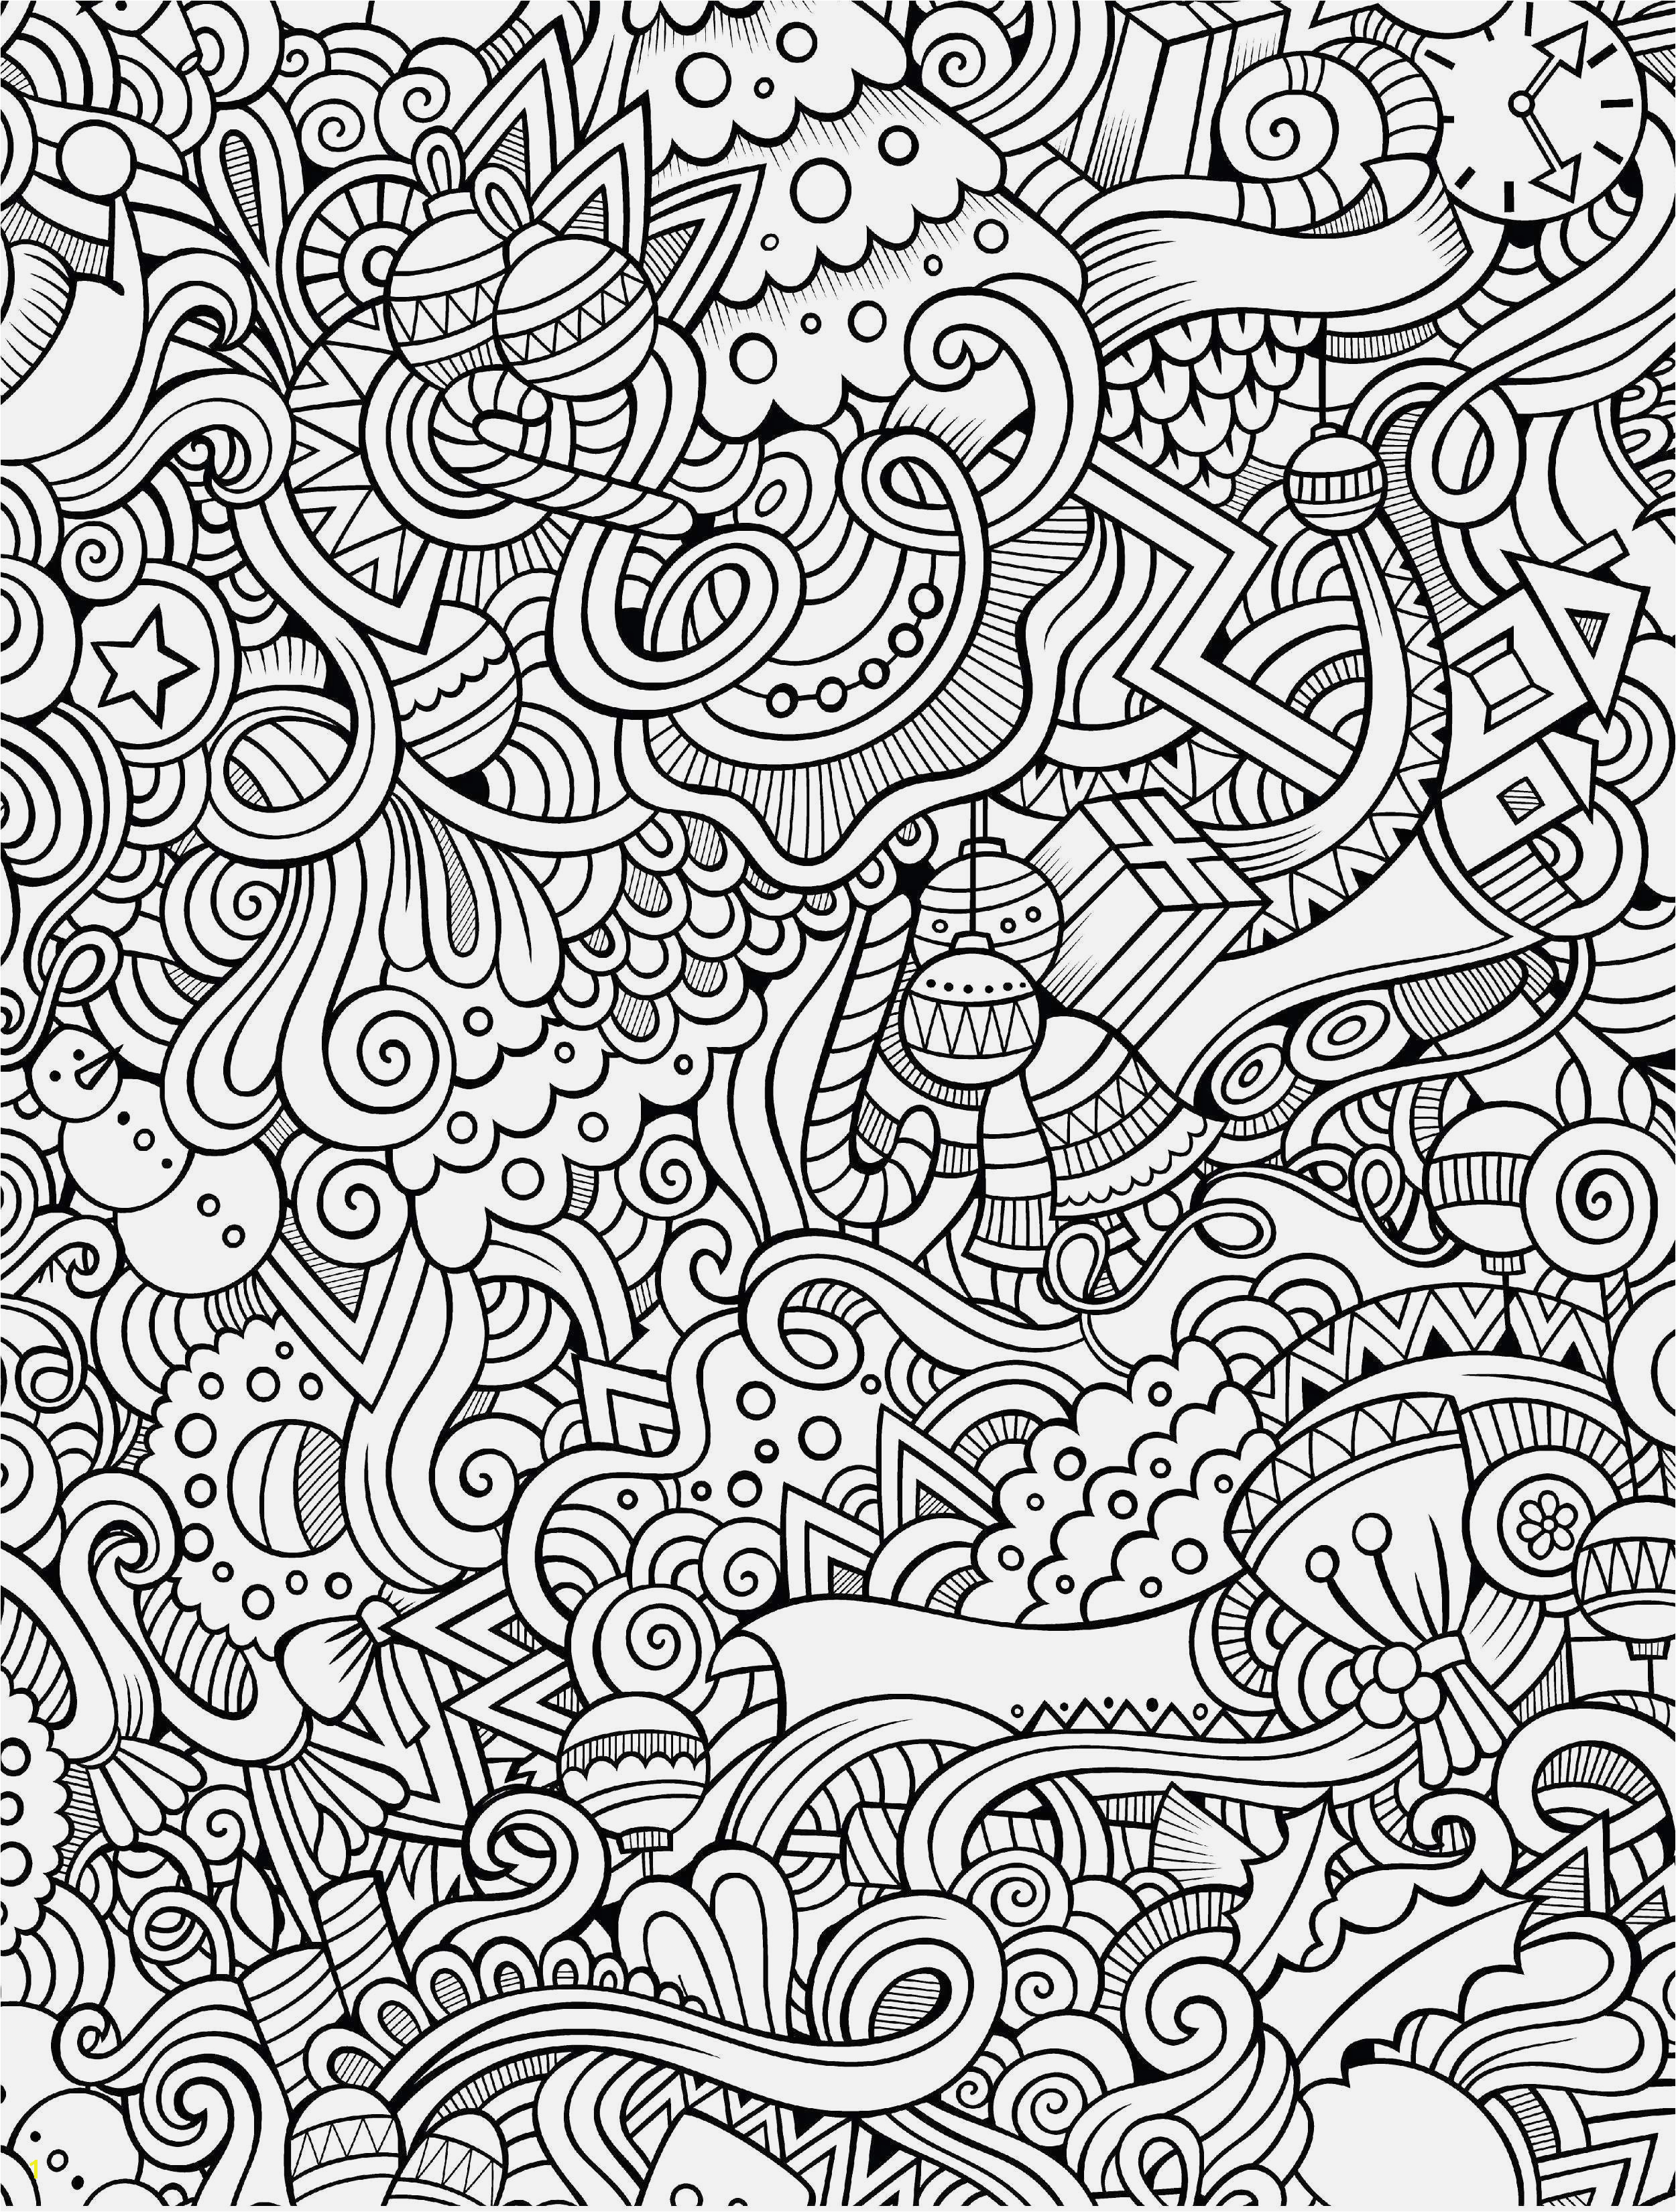 Free Printable Coloring Pages for Adults Advanced Amazing Advantages Christmas Color Pages to Print Free Free Printable Coloring Pages